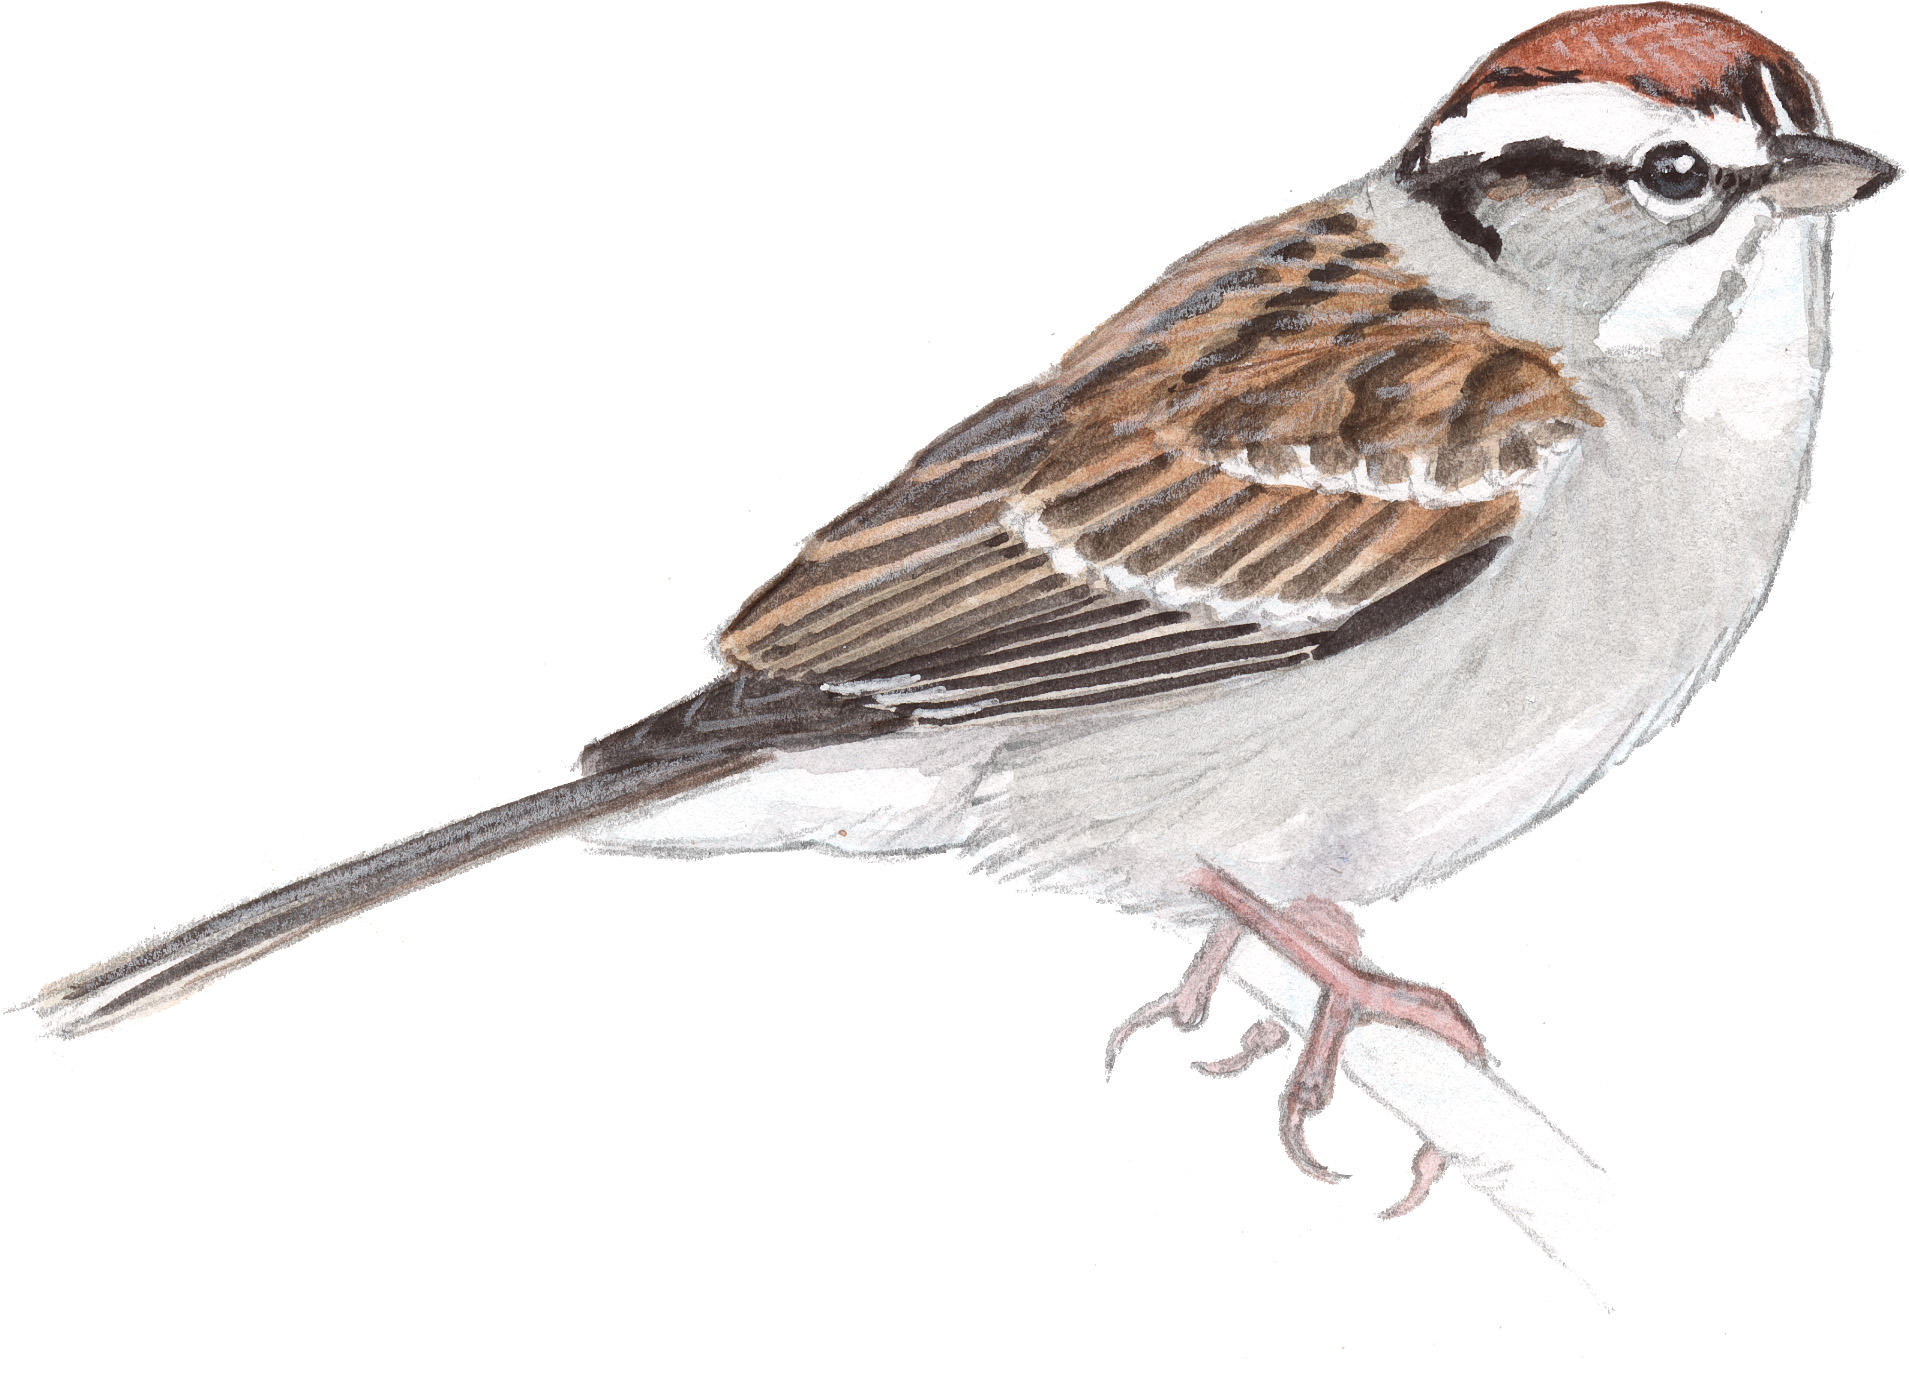 Drawn sparrow Drawing Picture Pencil Images Realistic